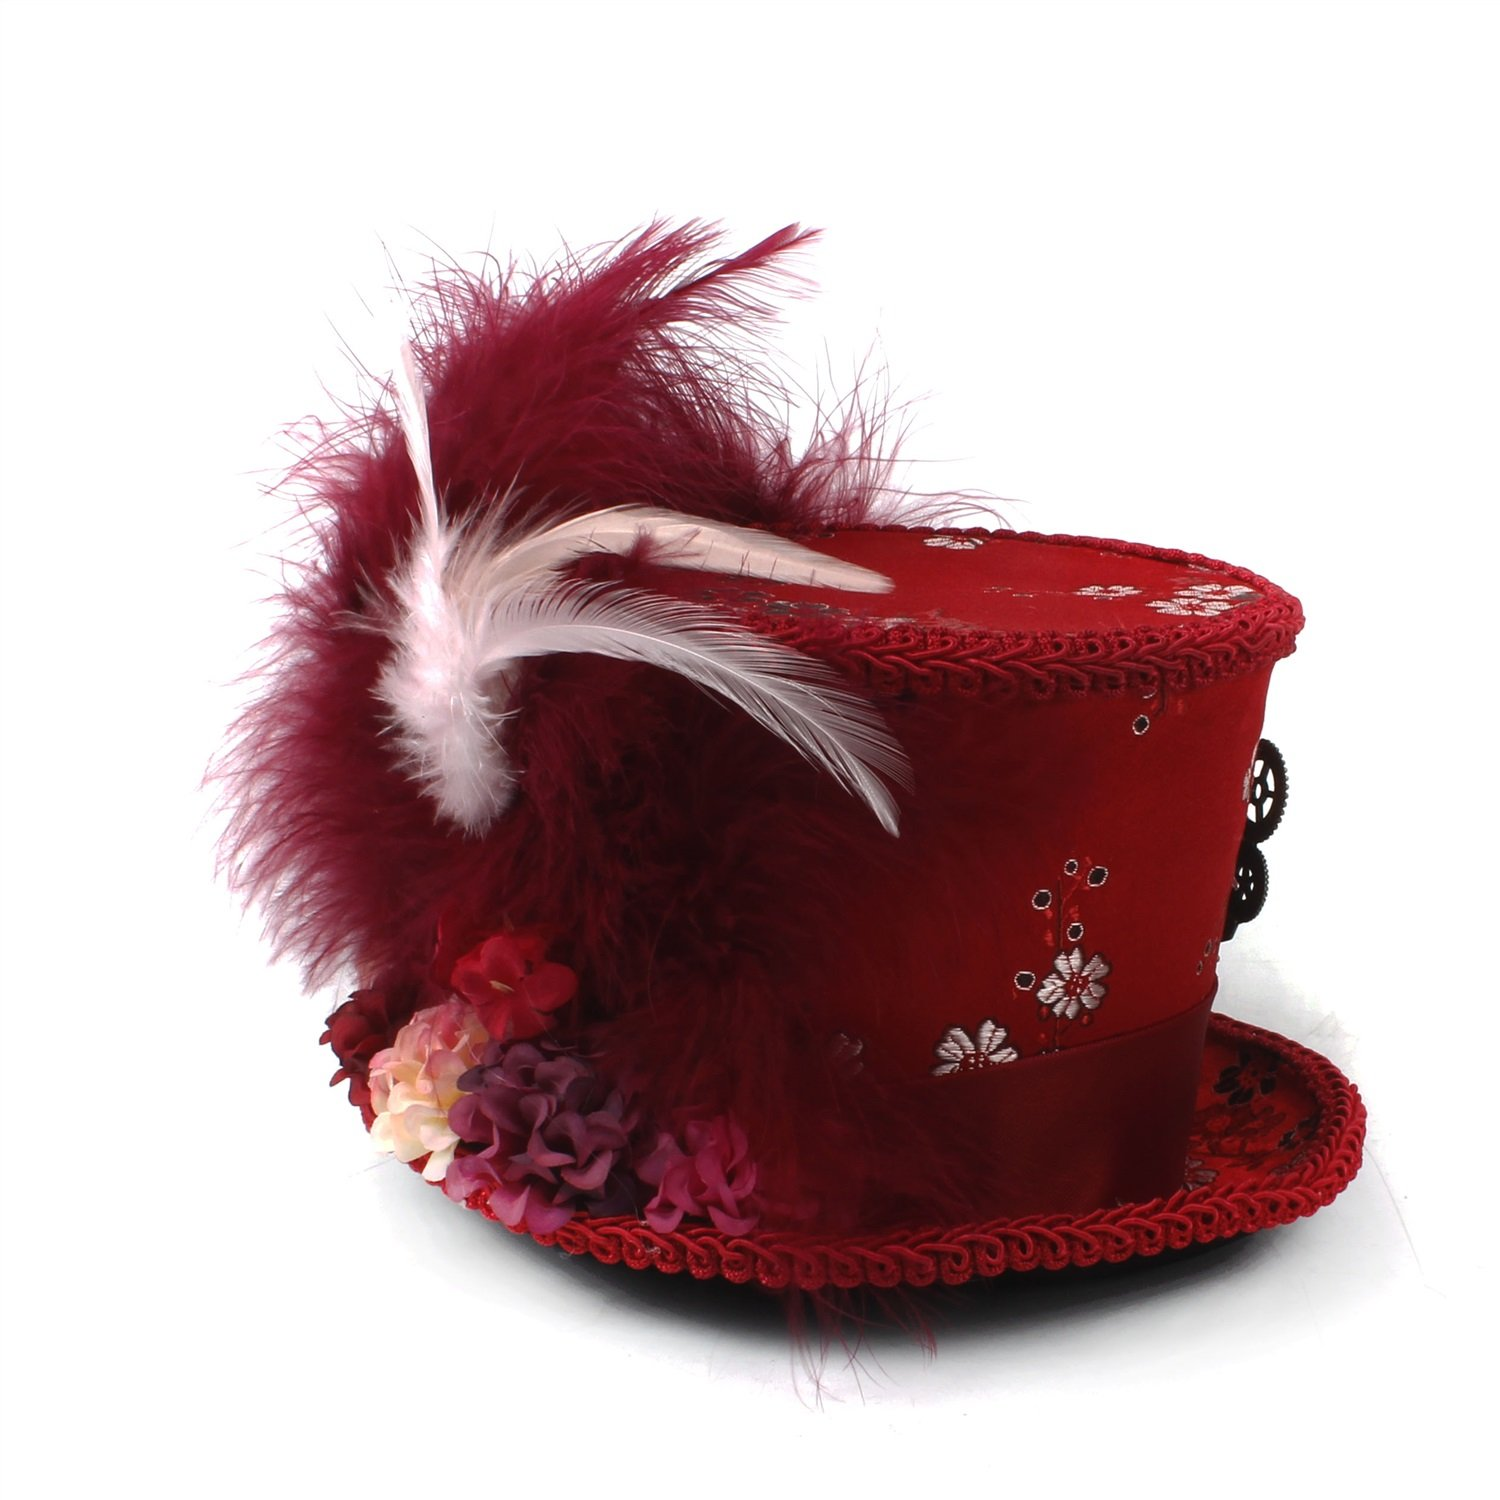 LL Women;s Red Mini Top Hat, Antique Red and Ivory Tea Cup Hat Mad Hatter Hat, Tea Hat,Mad Hatter Tea Party (Color : Red, Size : 25-30cm) by LL (Image #4)